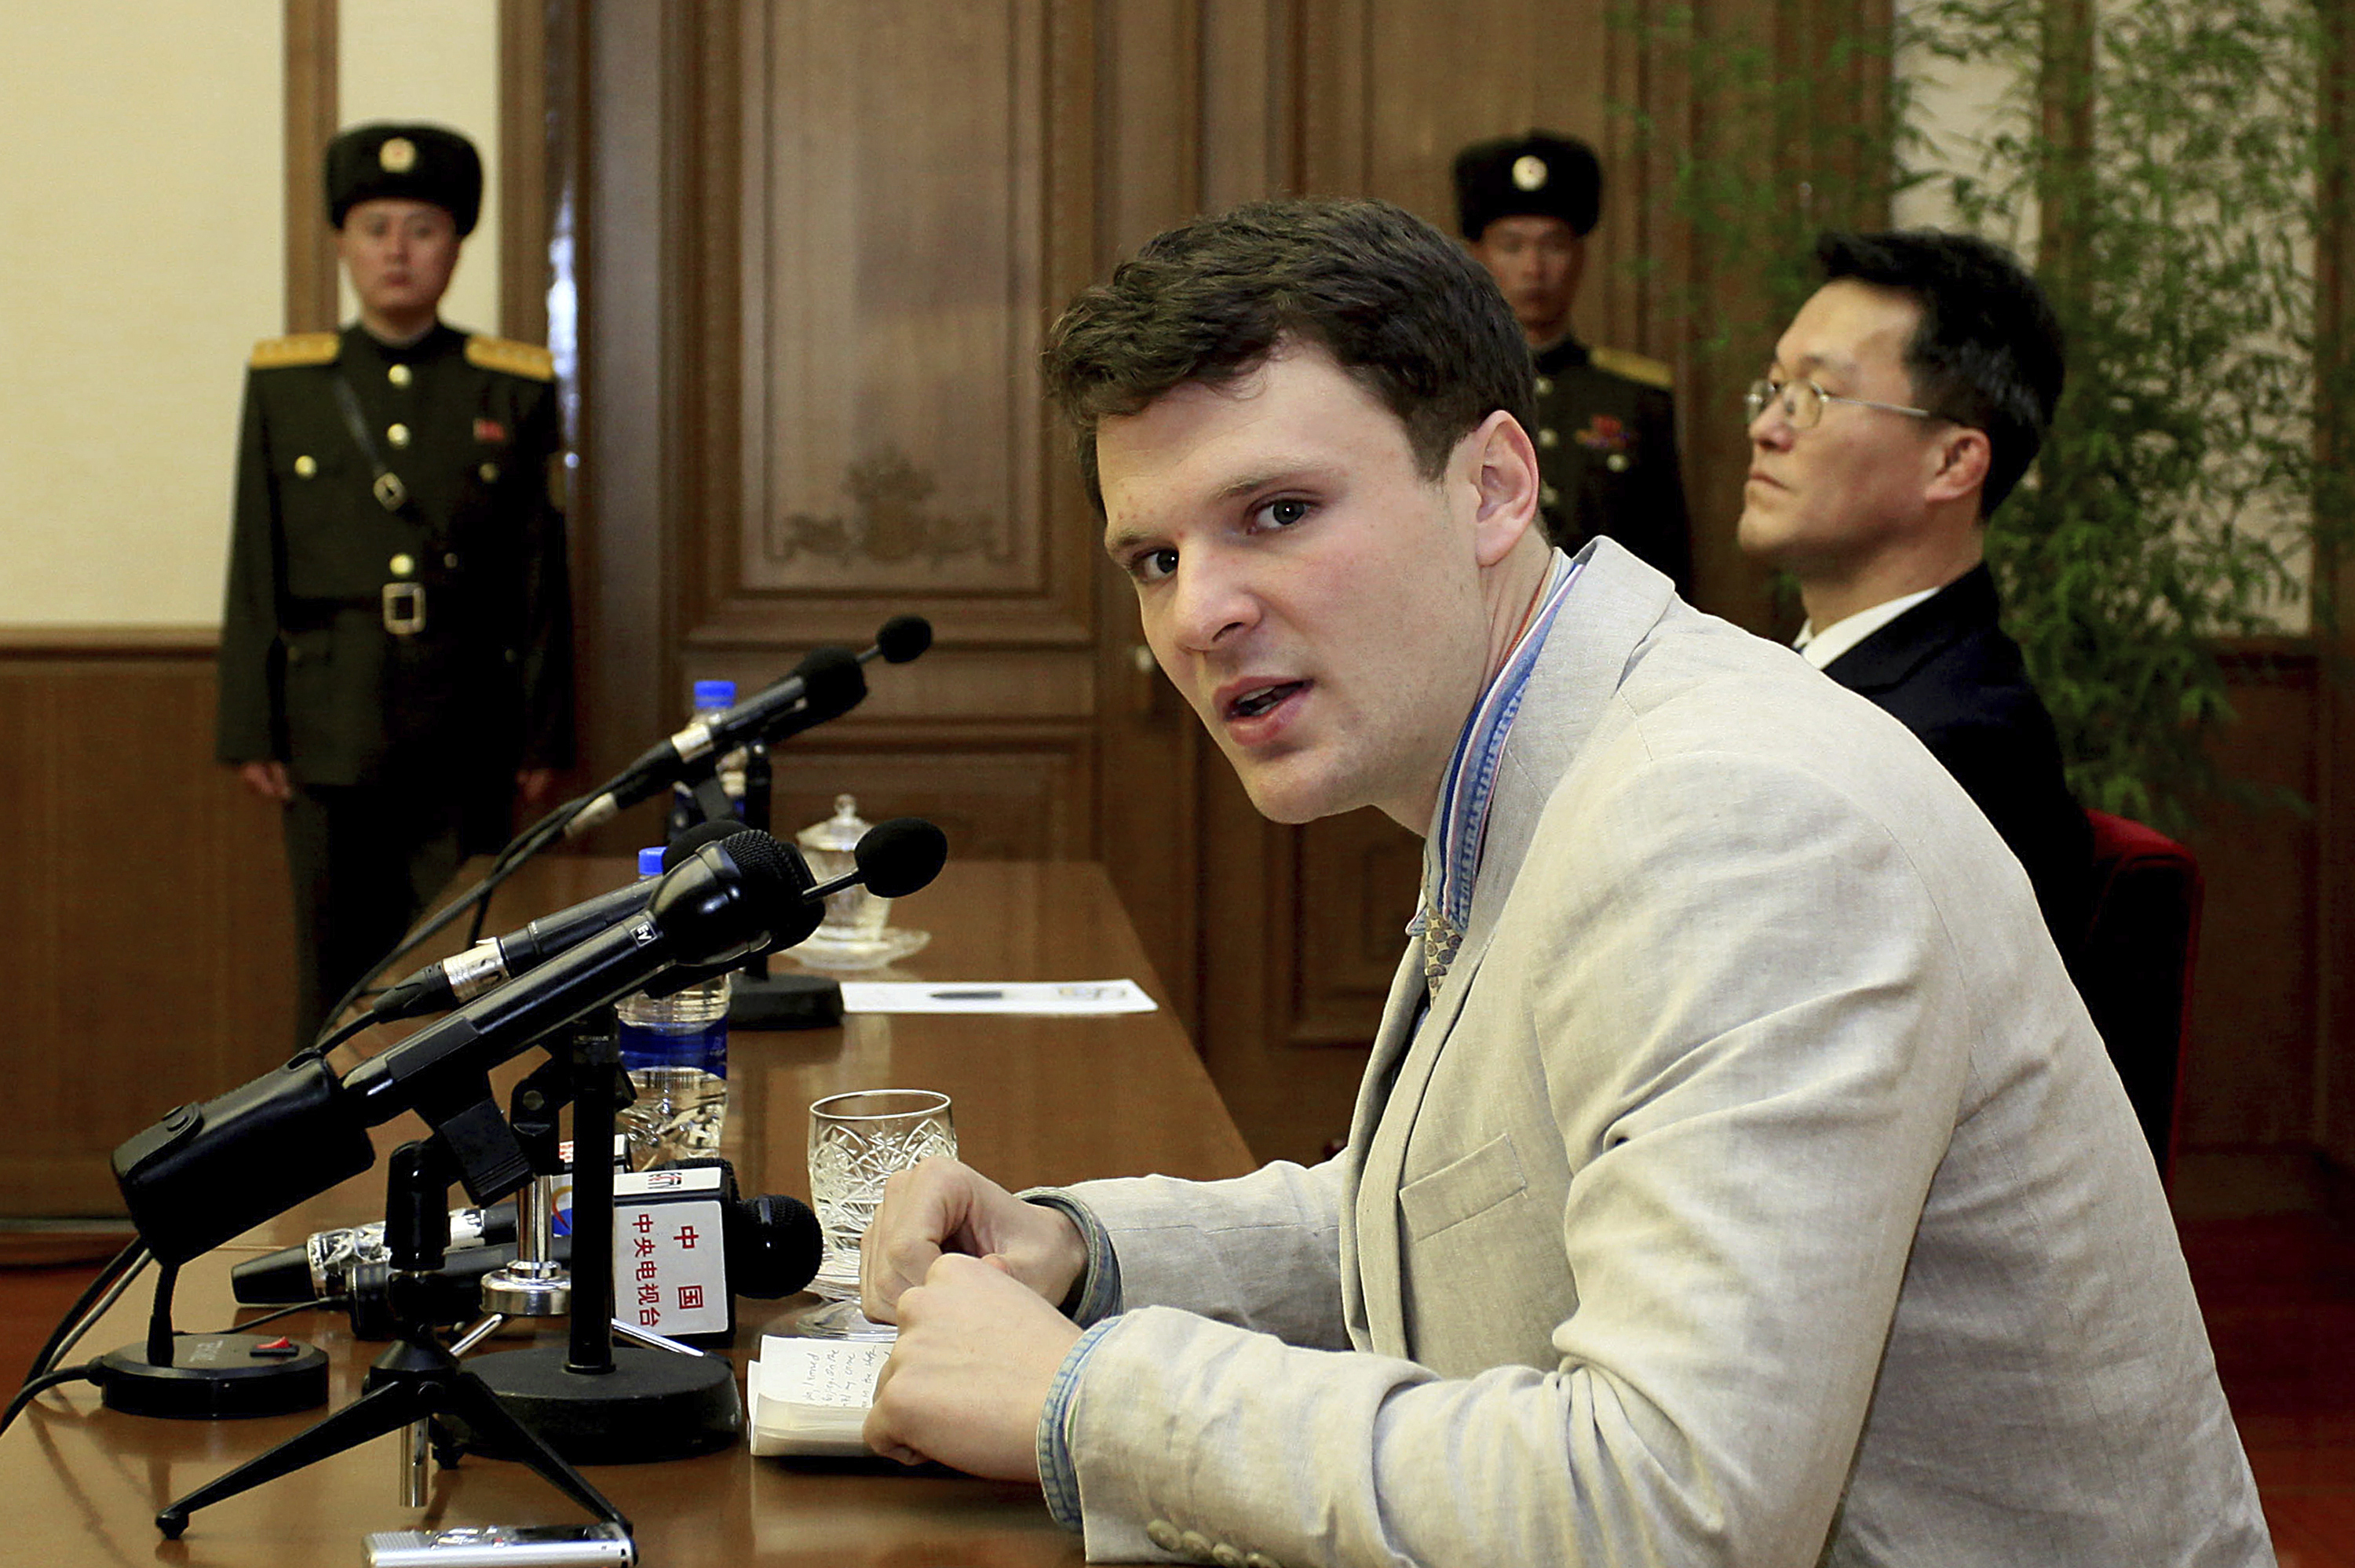 Timeline of Otto Warmbier's saga in North Korea